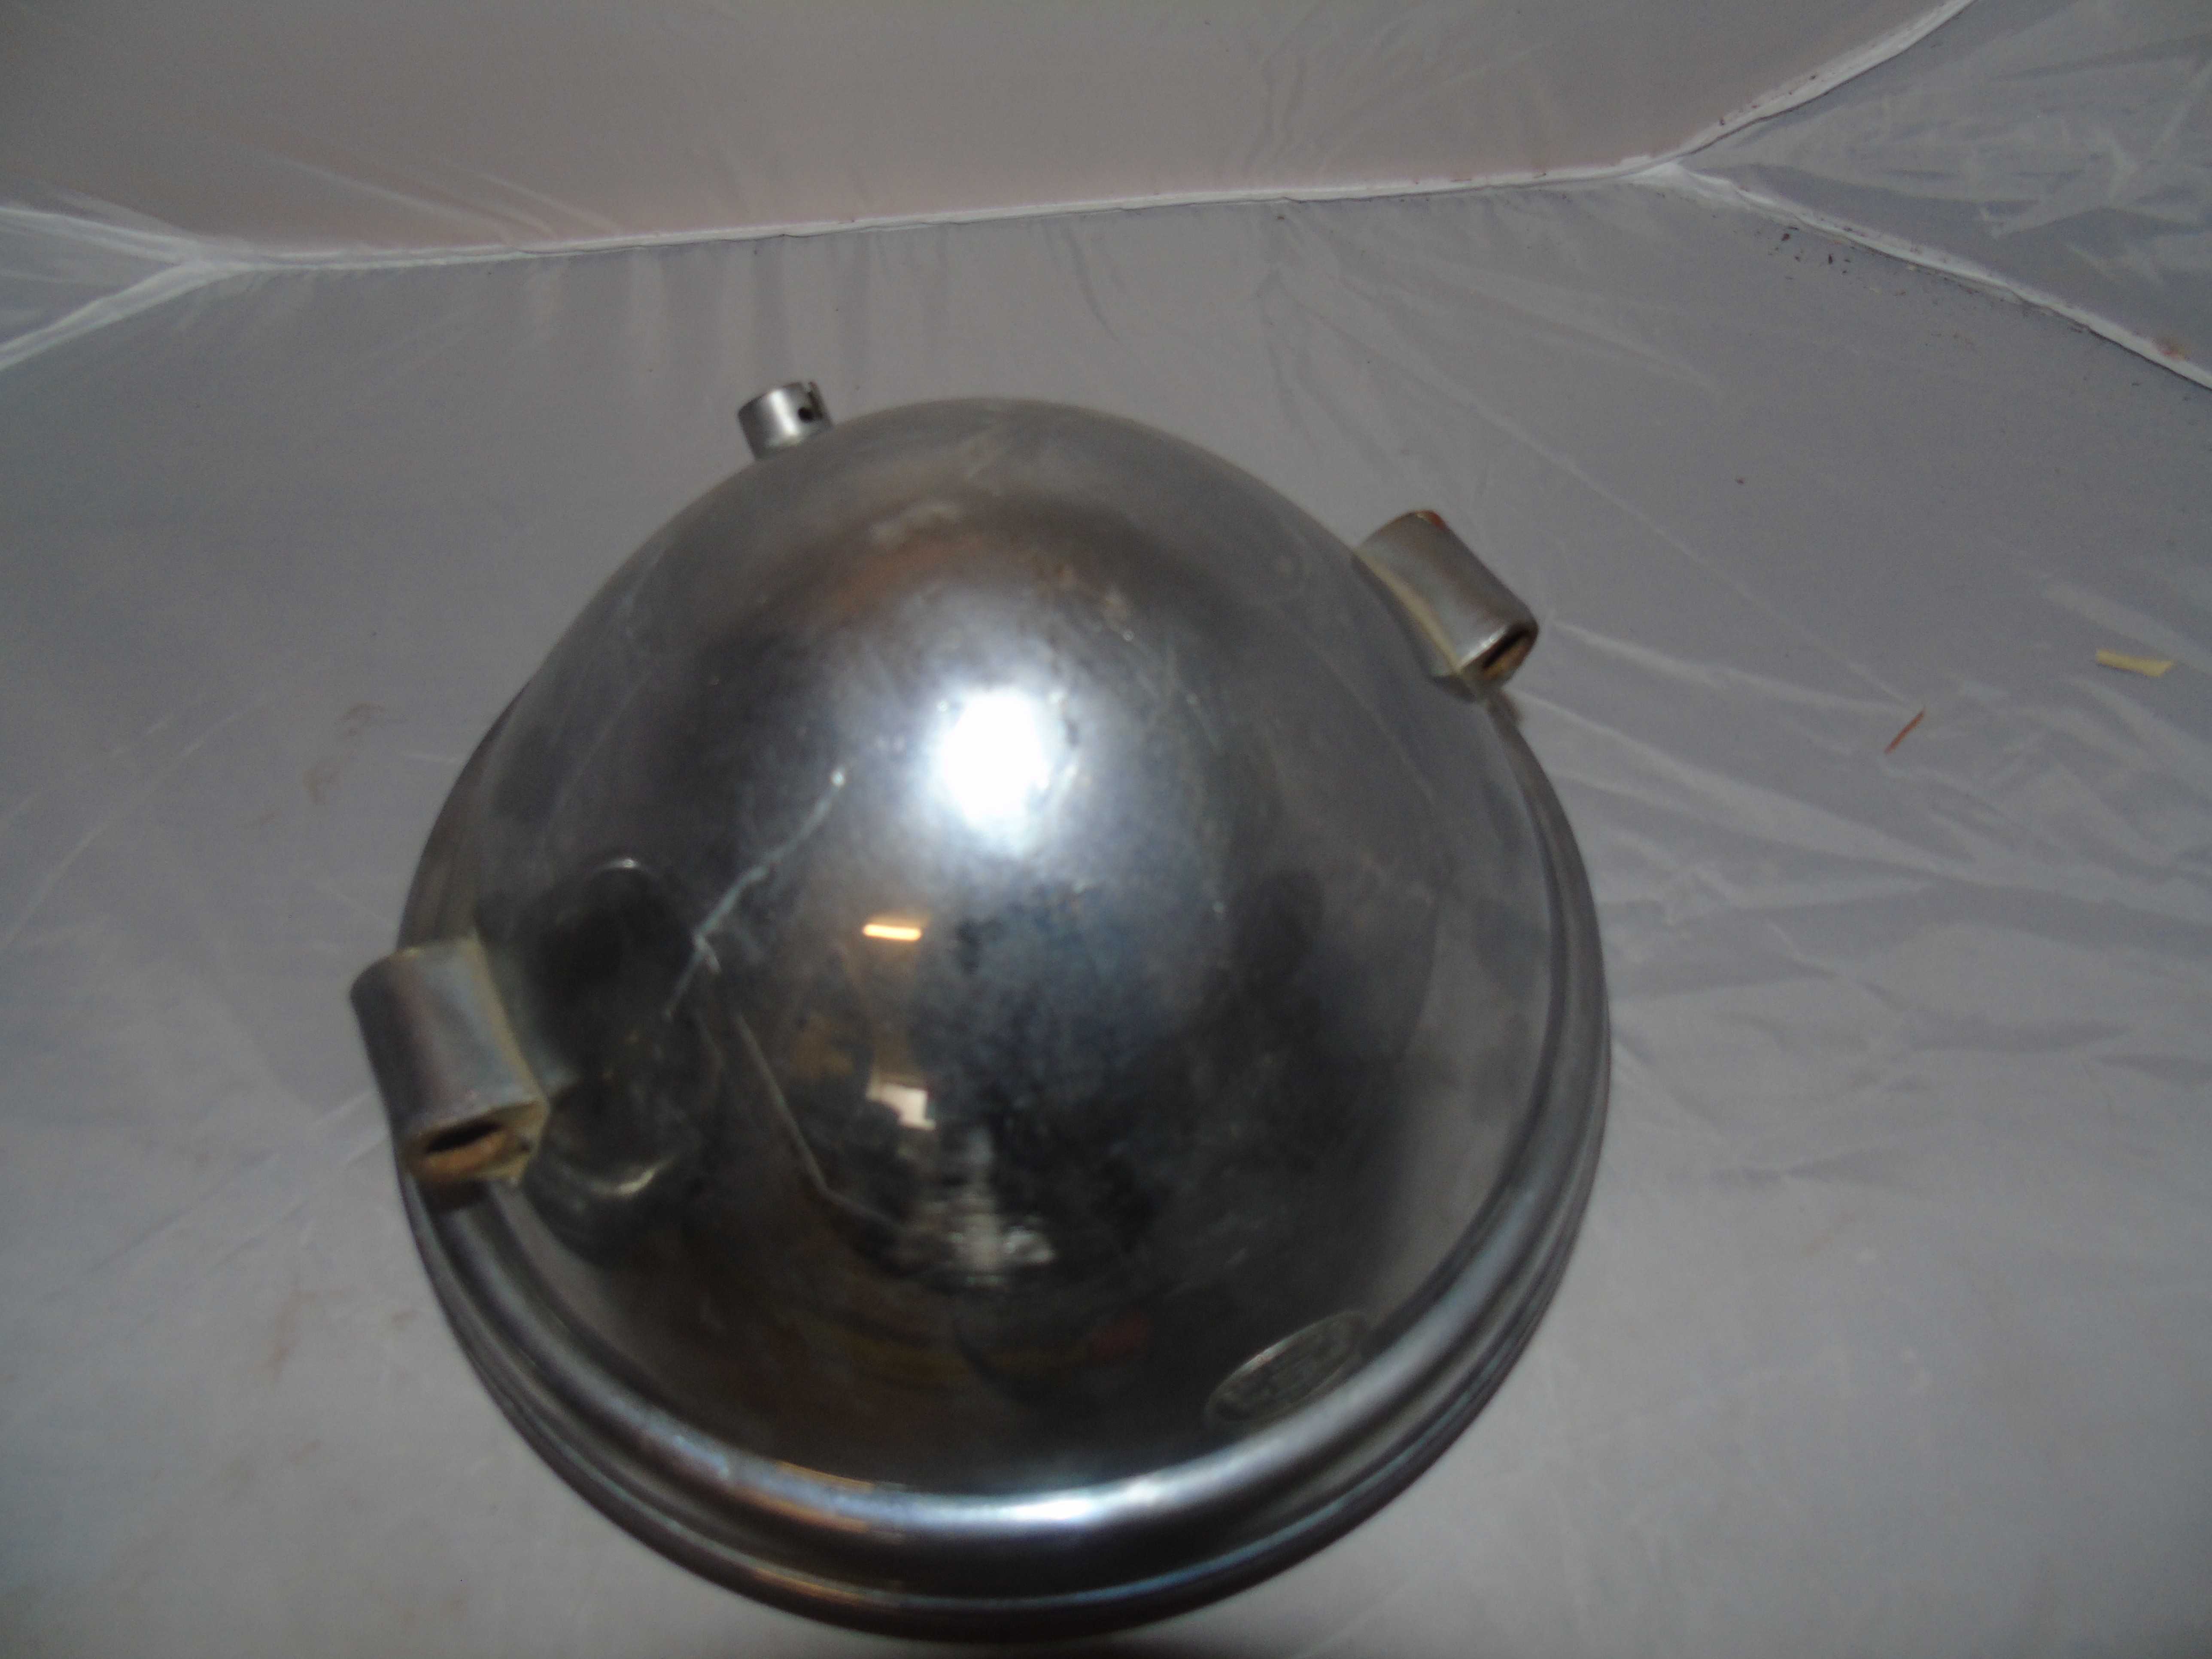 Lot 34 - EARLY 10 INS MOTOR CAR LAMP CHROME BODY BY S & M LAMP CO LOS ANGELES 2 OTHER 12 INS & OTHER PARTS